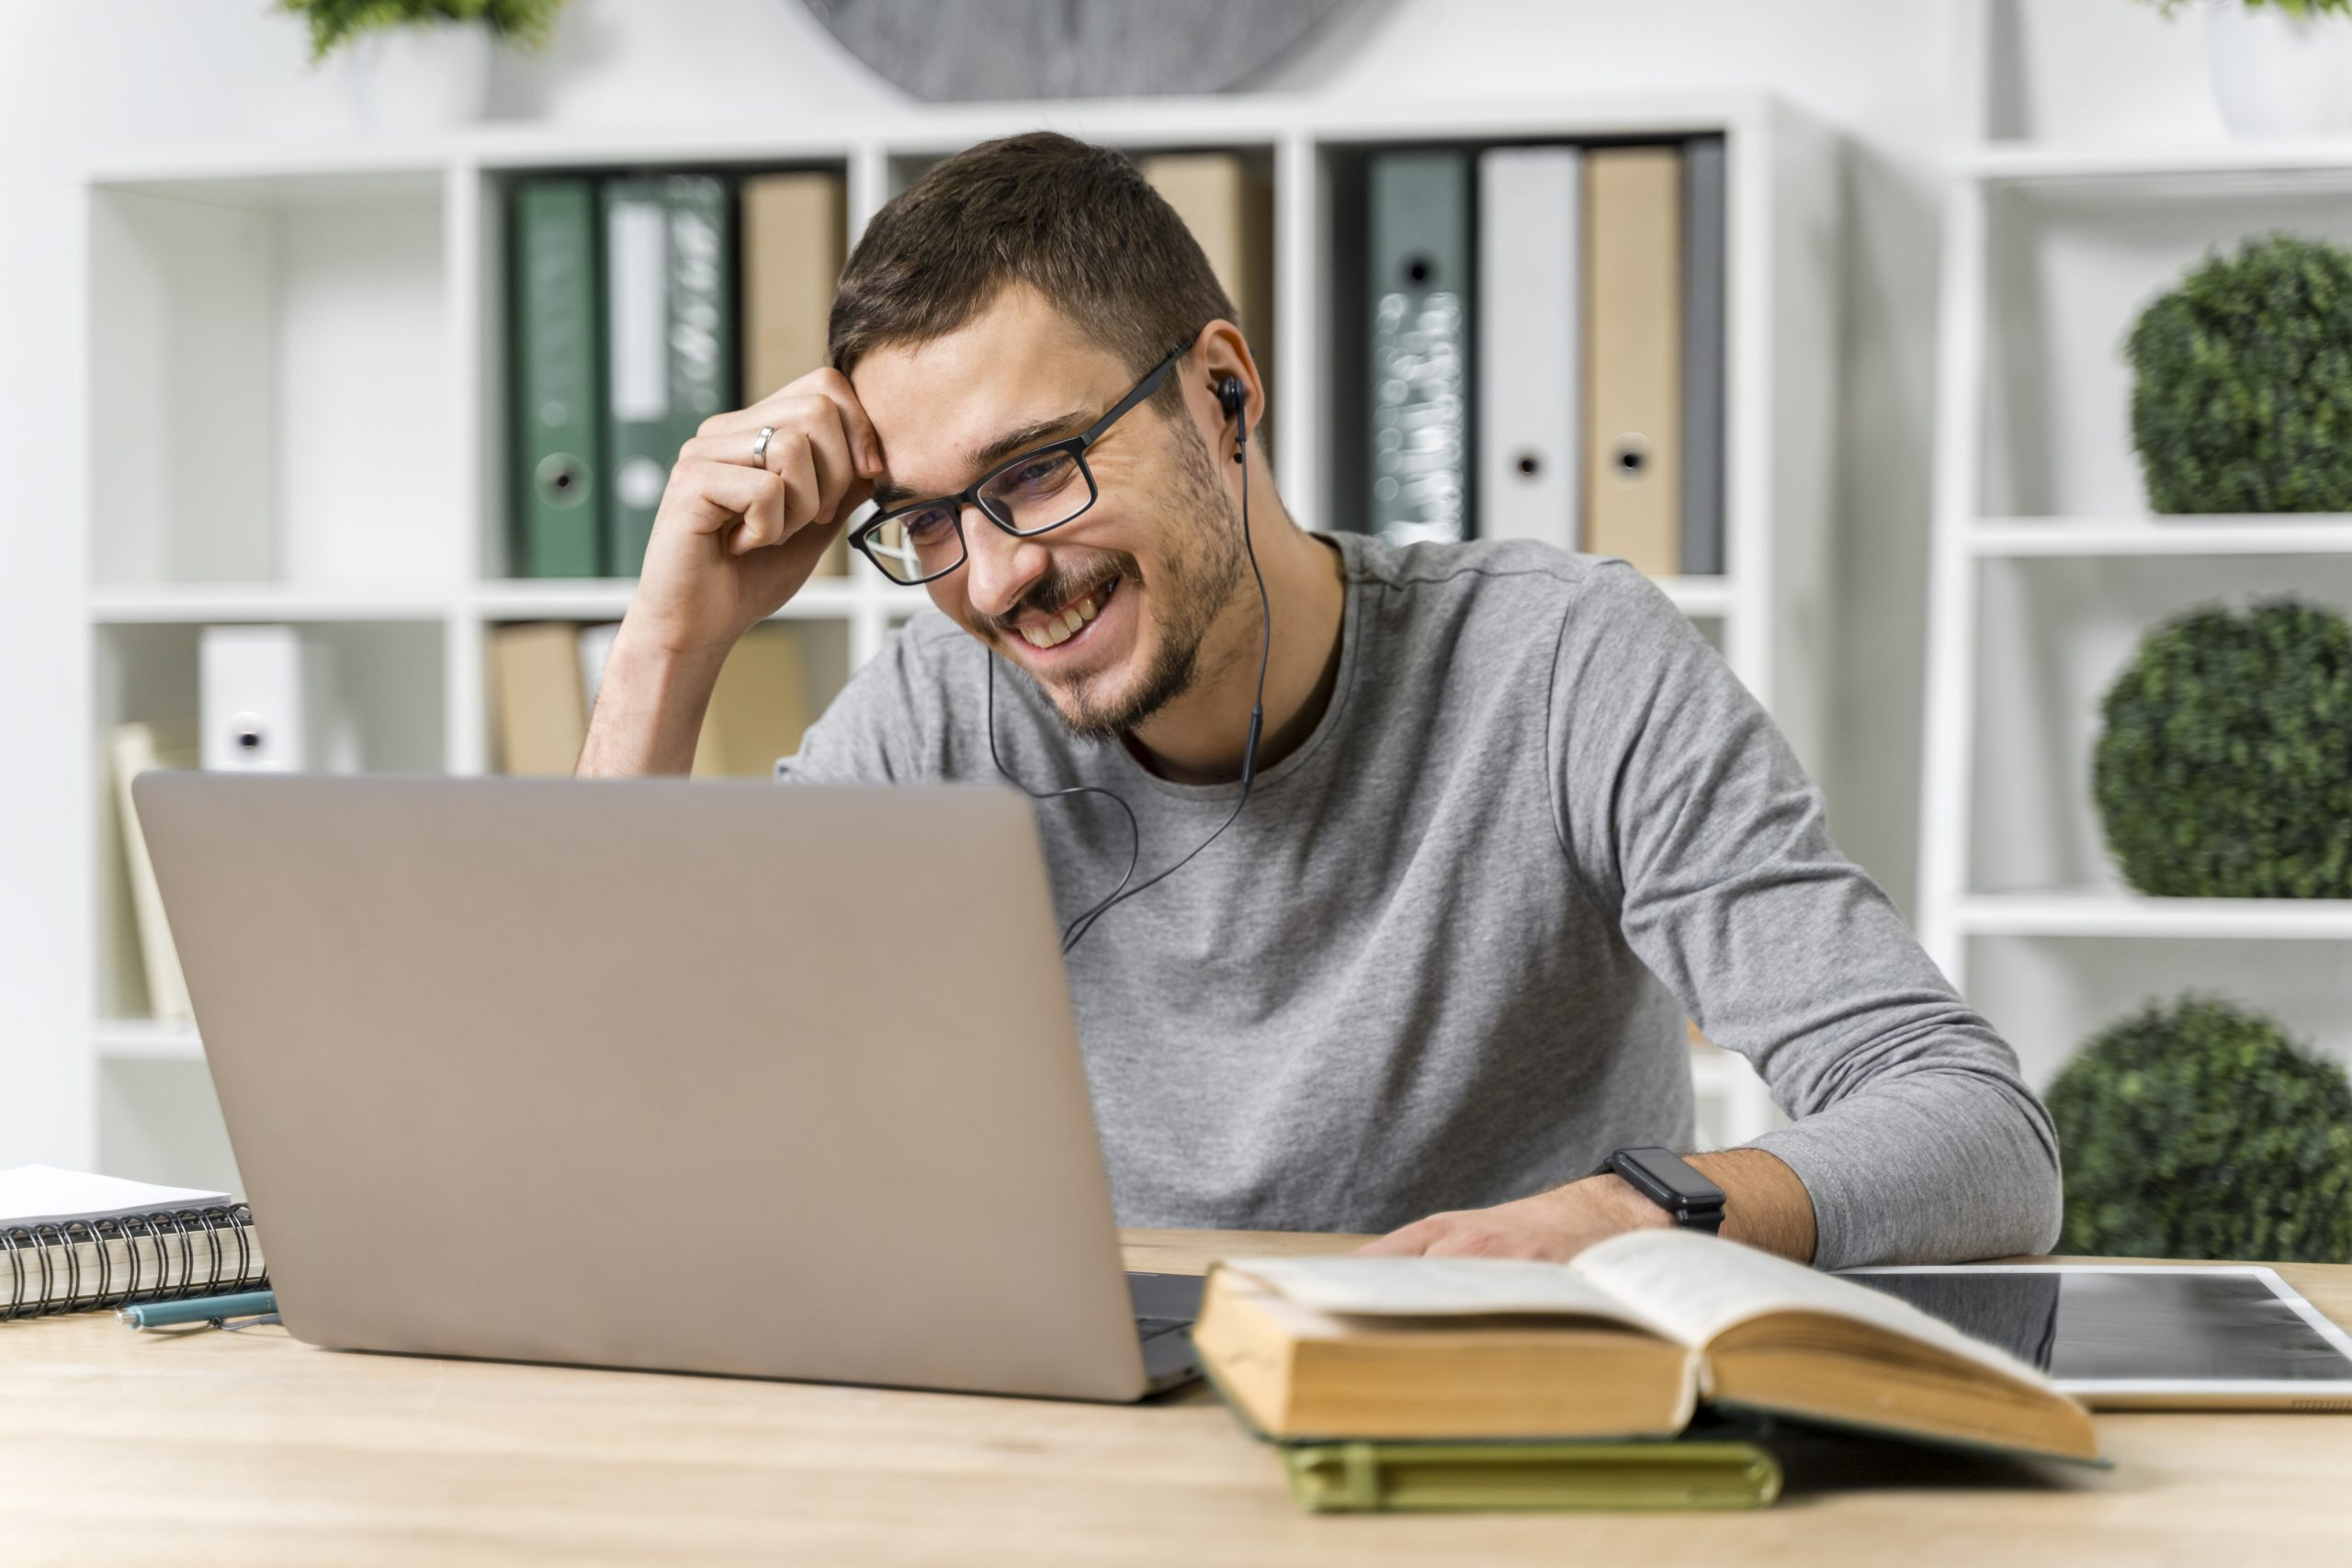 medium-shot-smiley-guy-studying-with-his-laptop